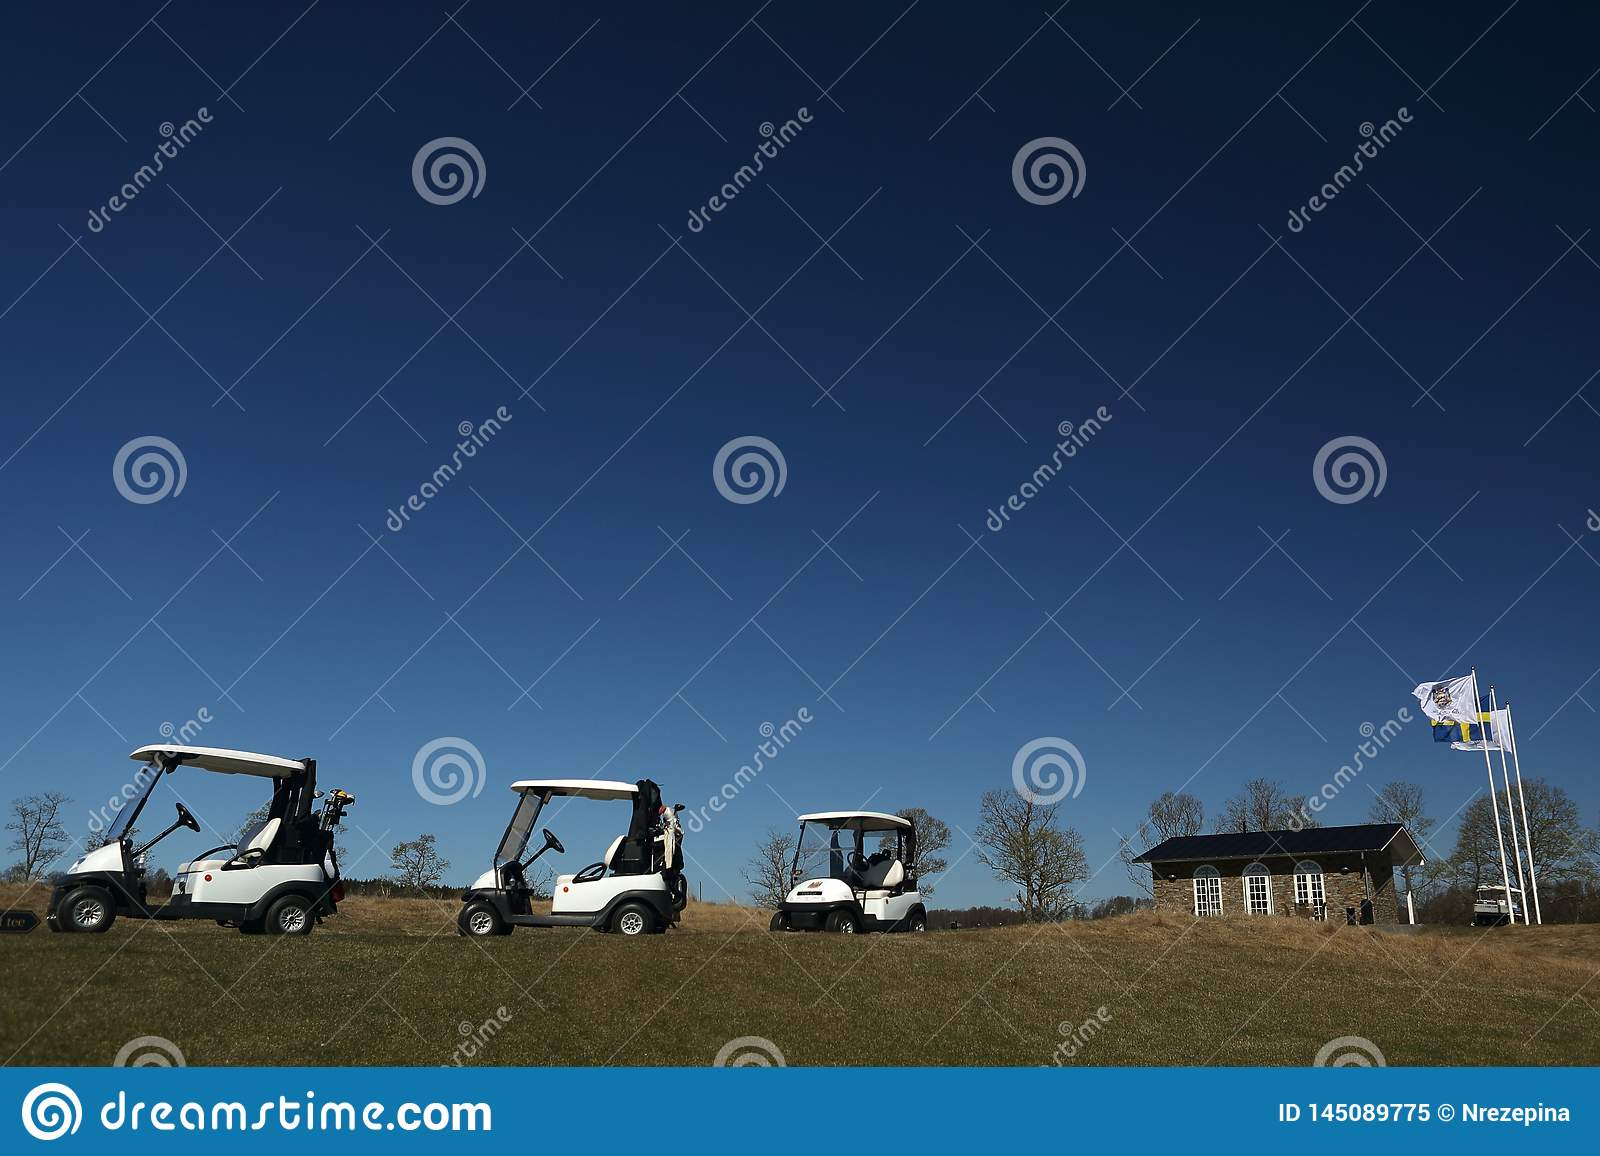 A golf course with golfcarts